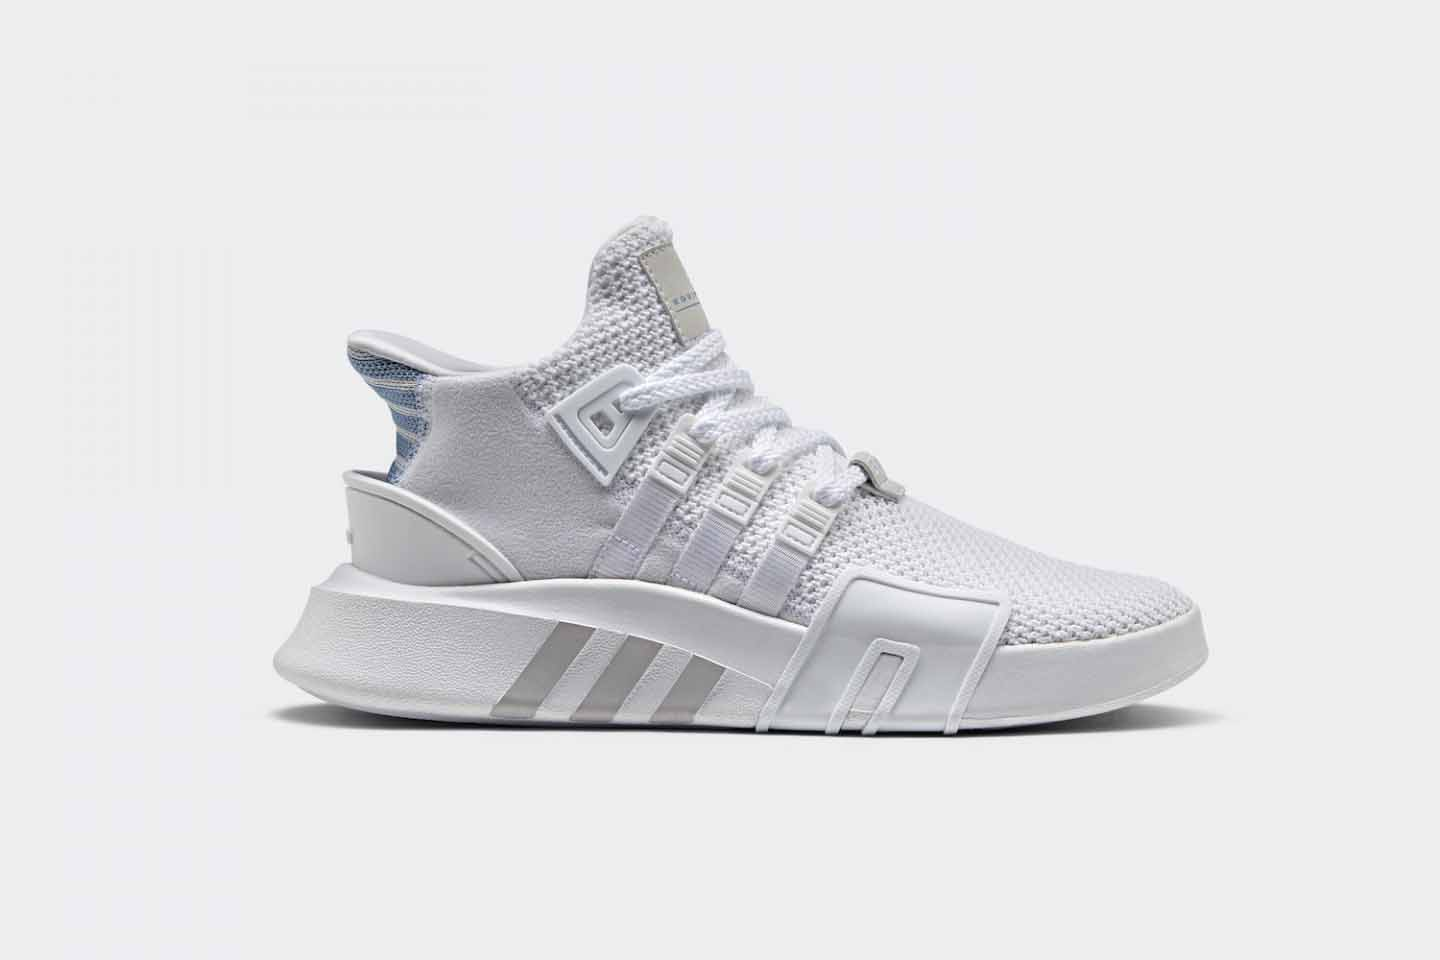 adidas-originals-eqt-basketball-adv-07-1440x960